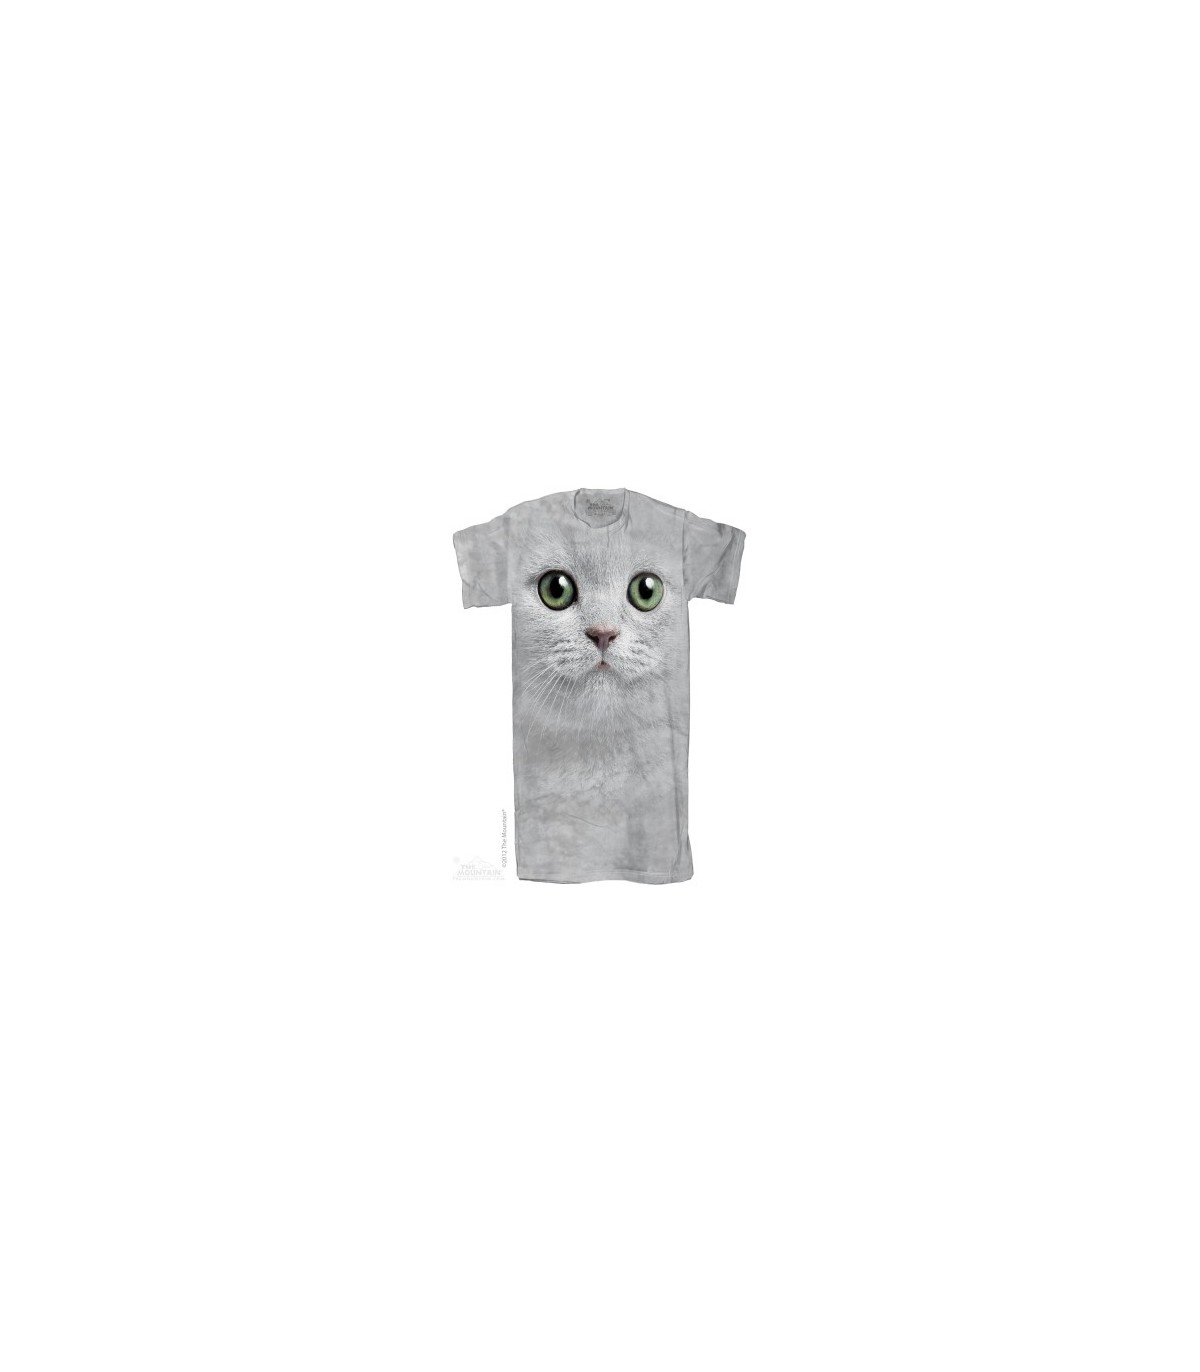 green-eyes-face-adult-nightshirt-the-mountain.jpg a4e416ccd